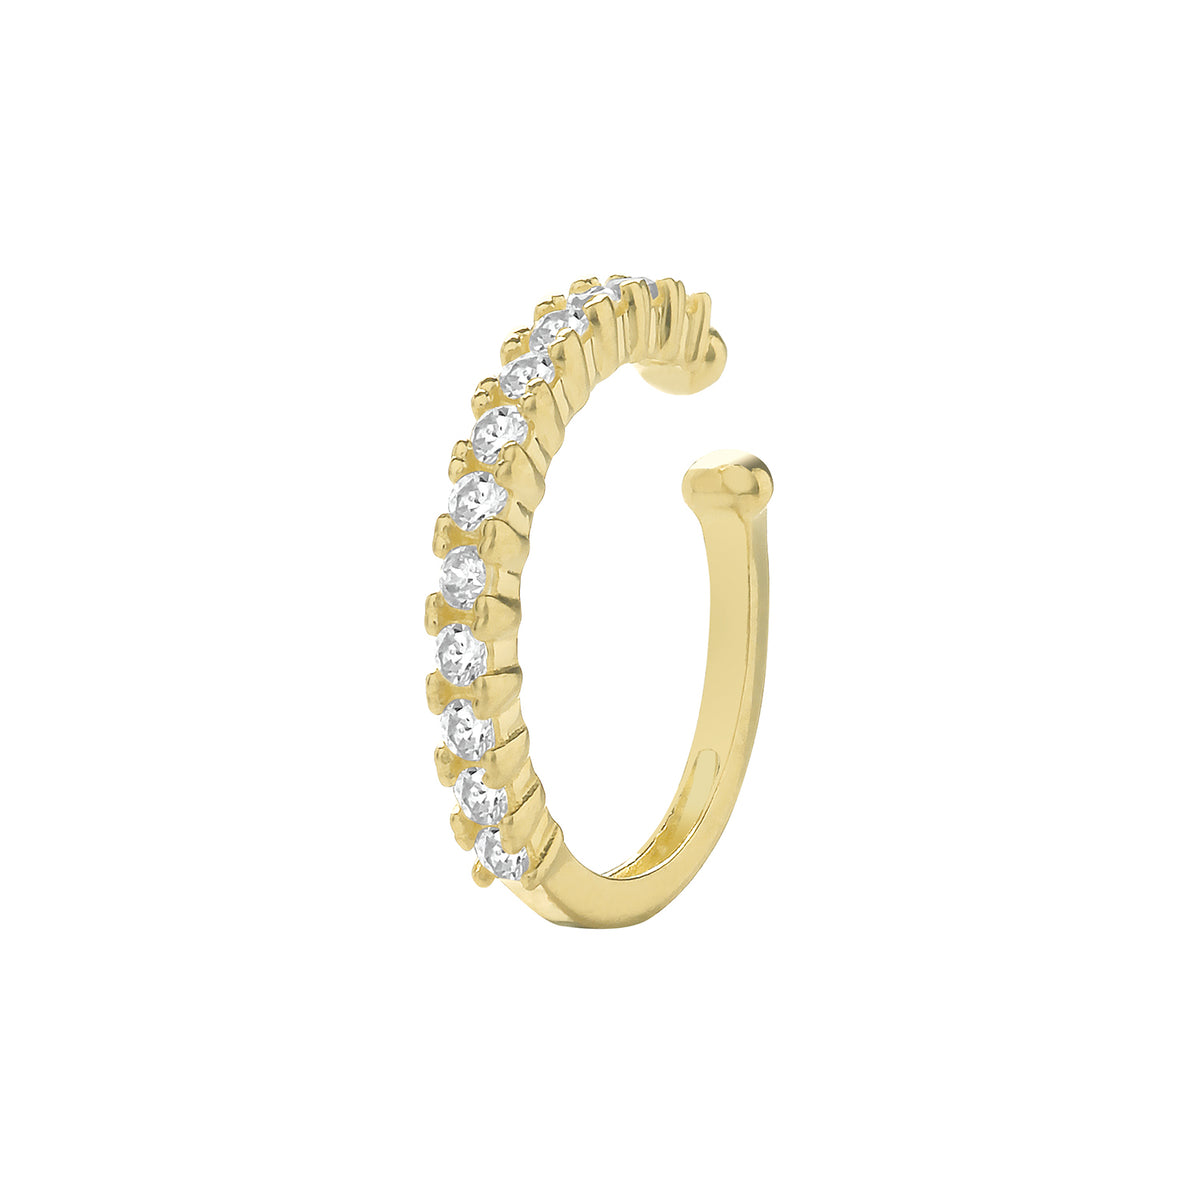 9ct Yellow Gold CZ Ear Cartilage Cuff